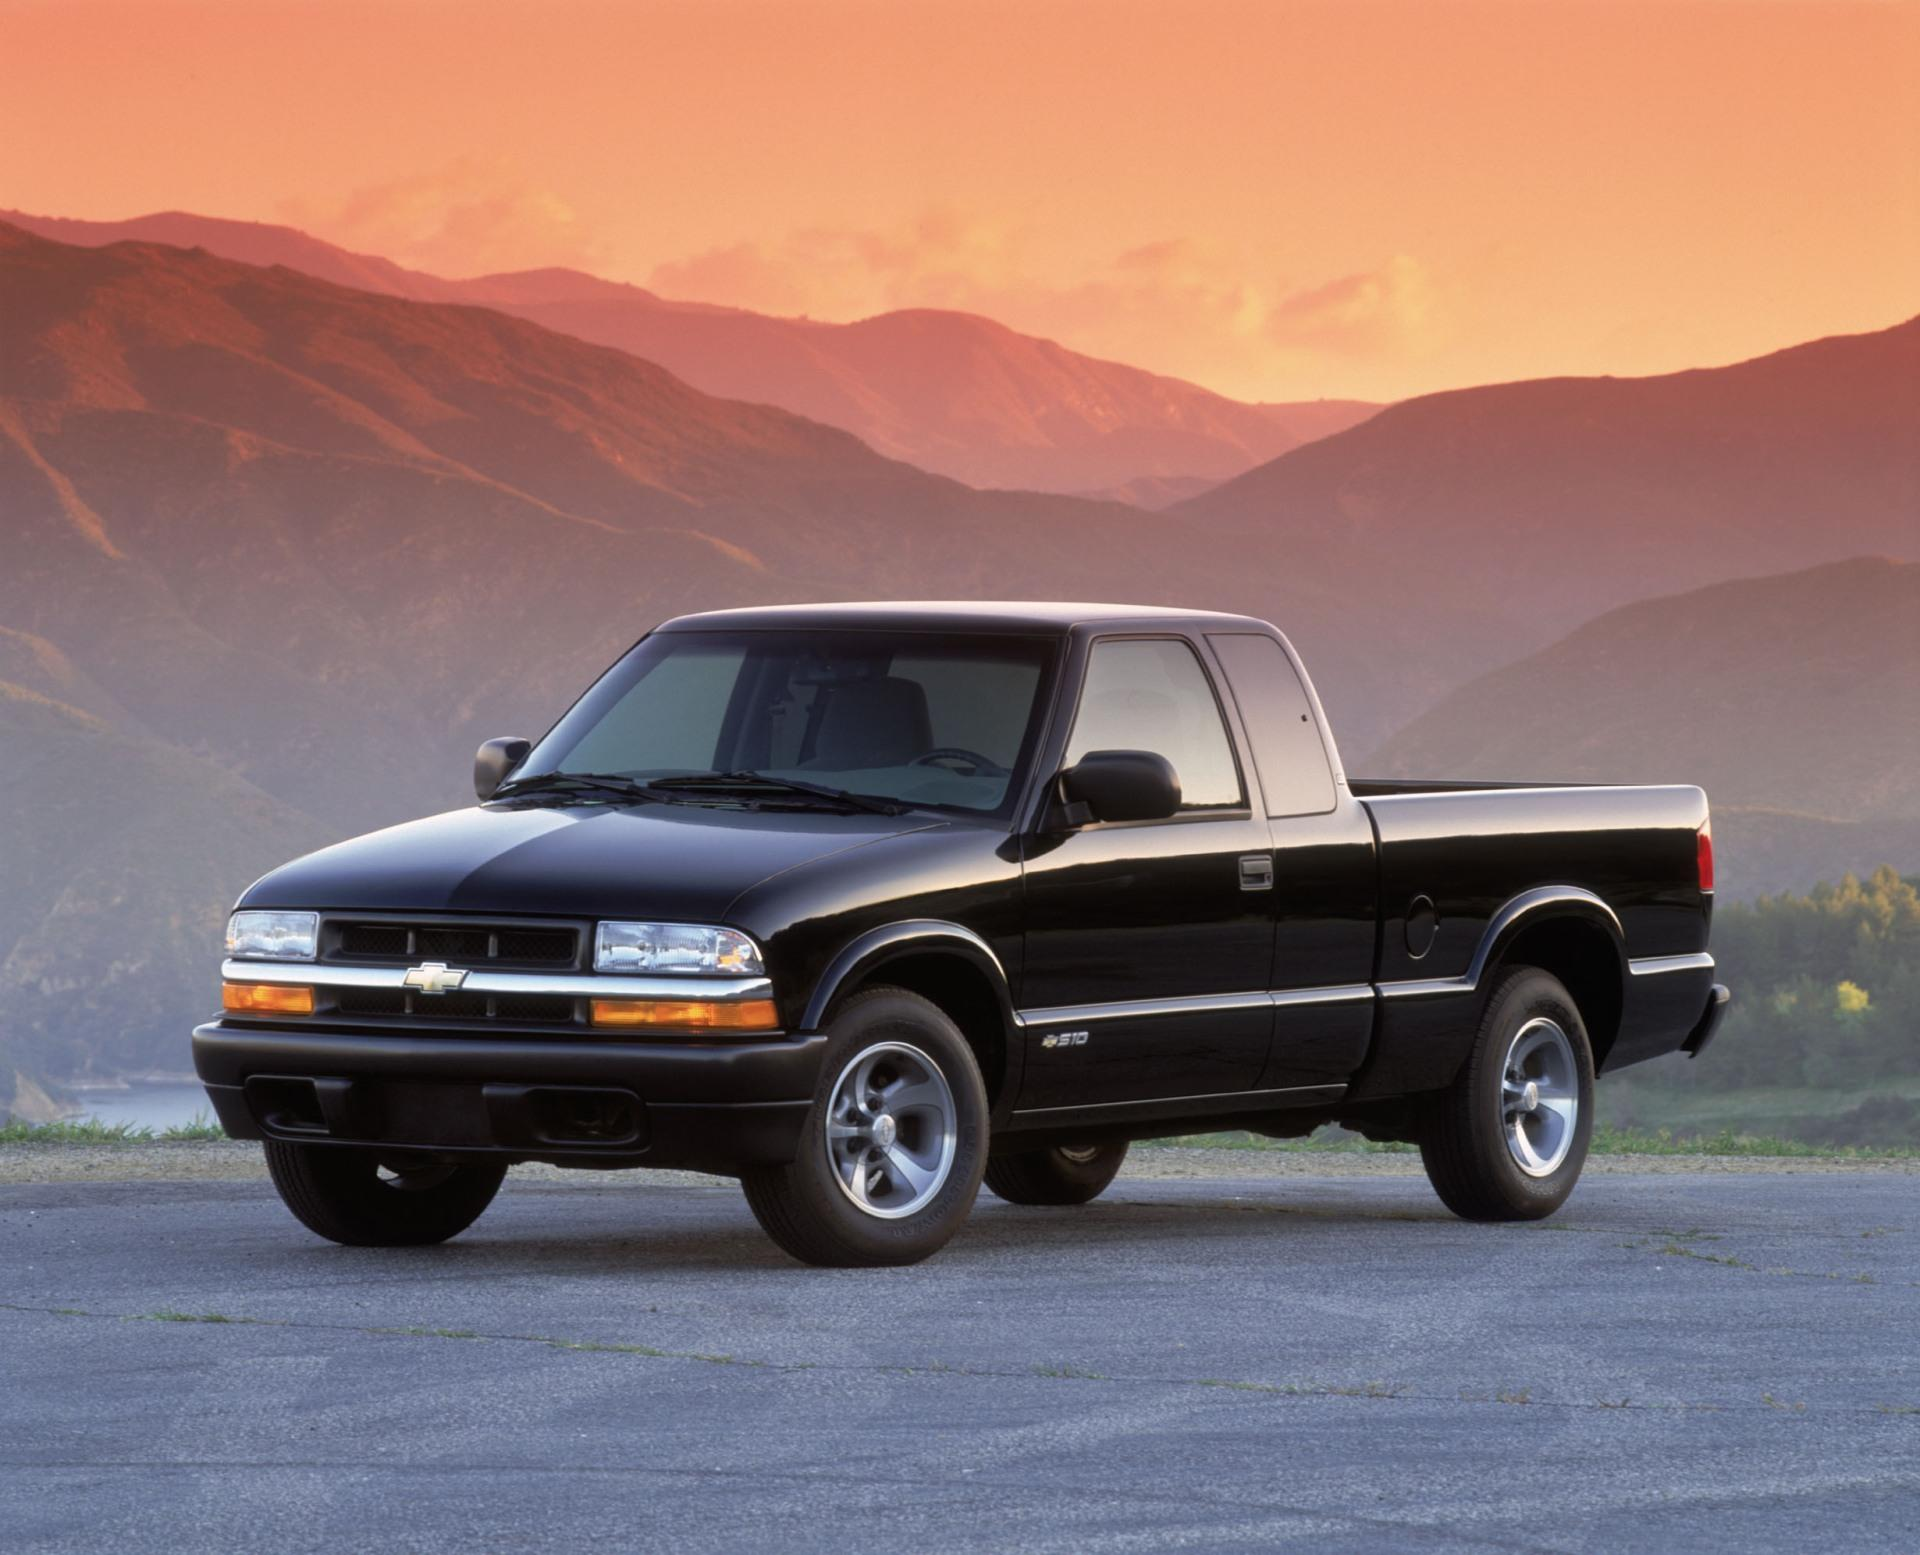 1999 chevrolet s 10. Black Bedroom Furniture Sets. Home Design Ideas